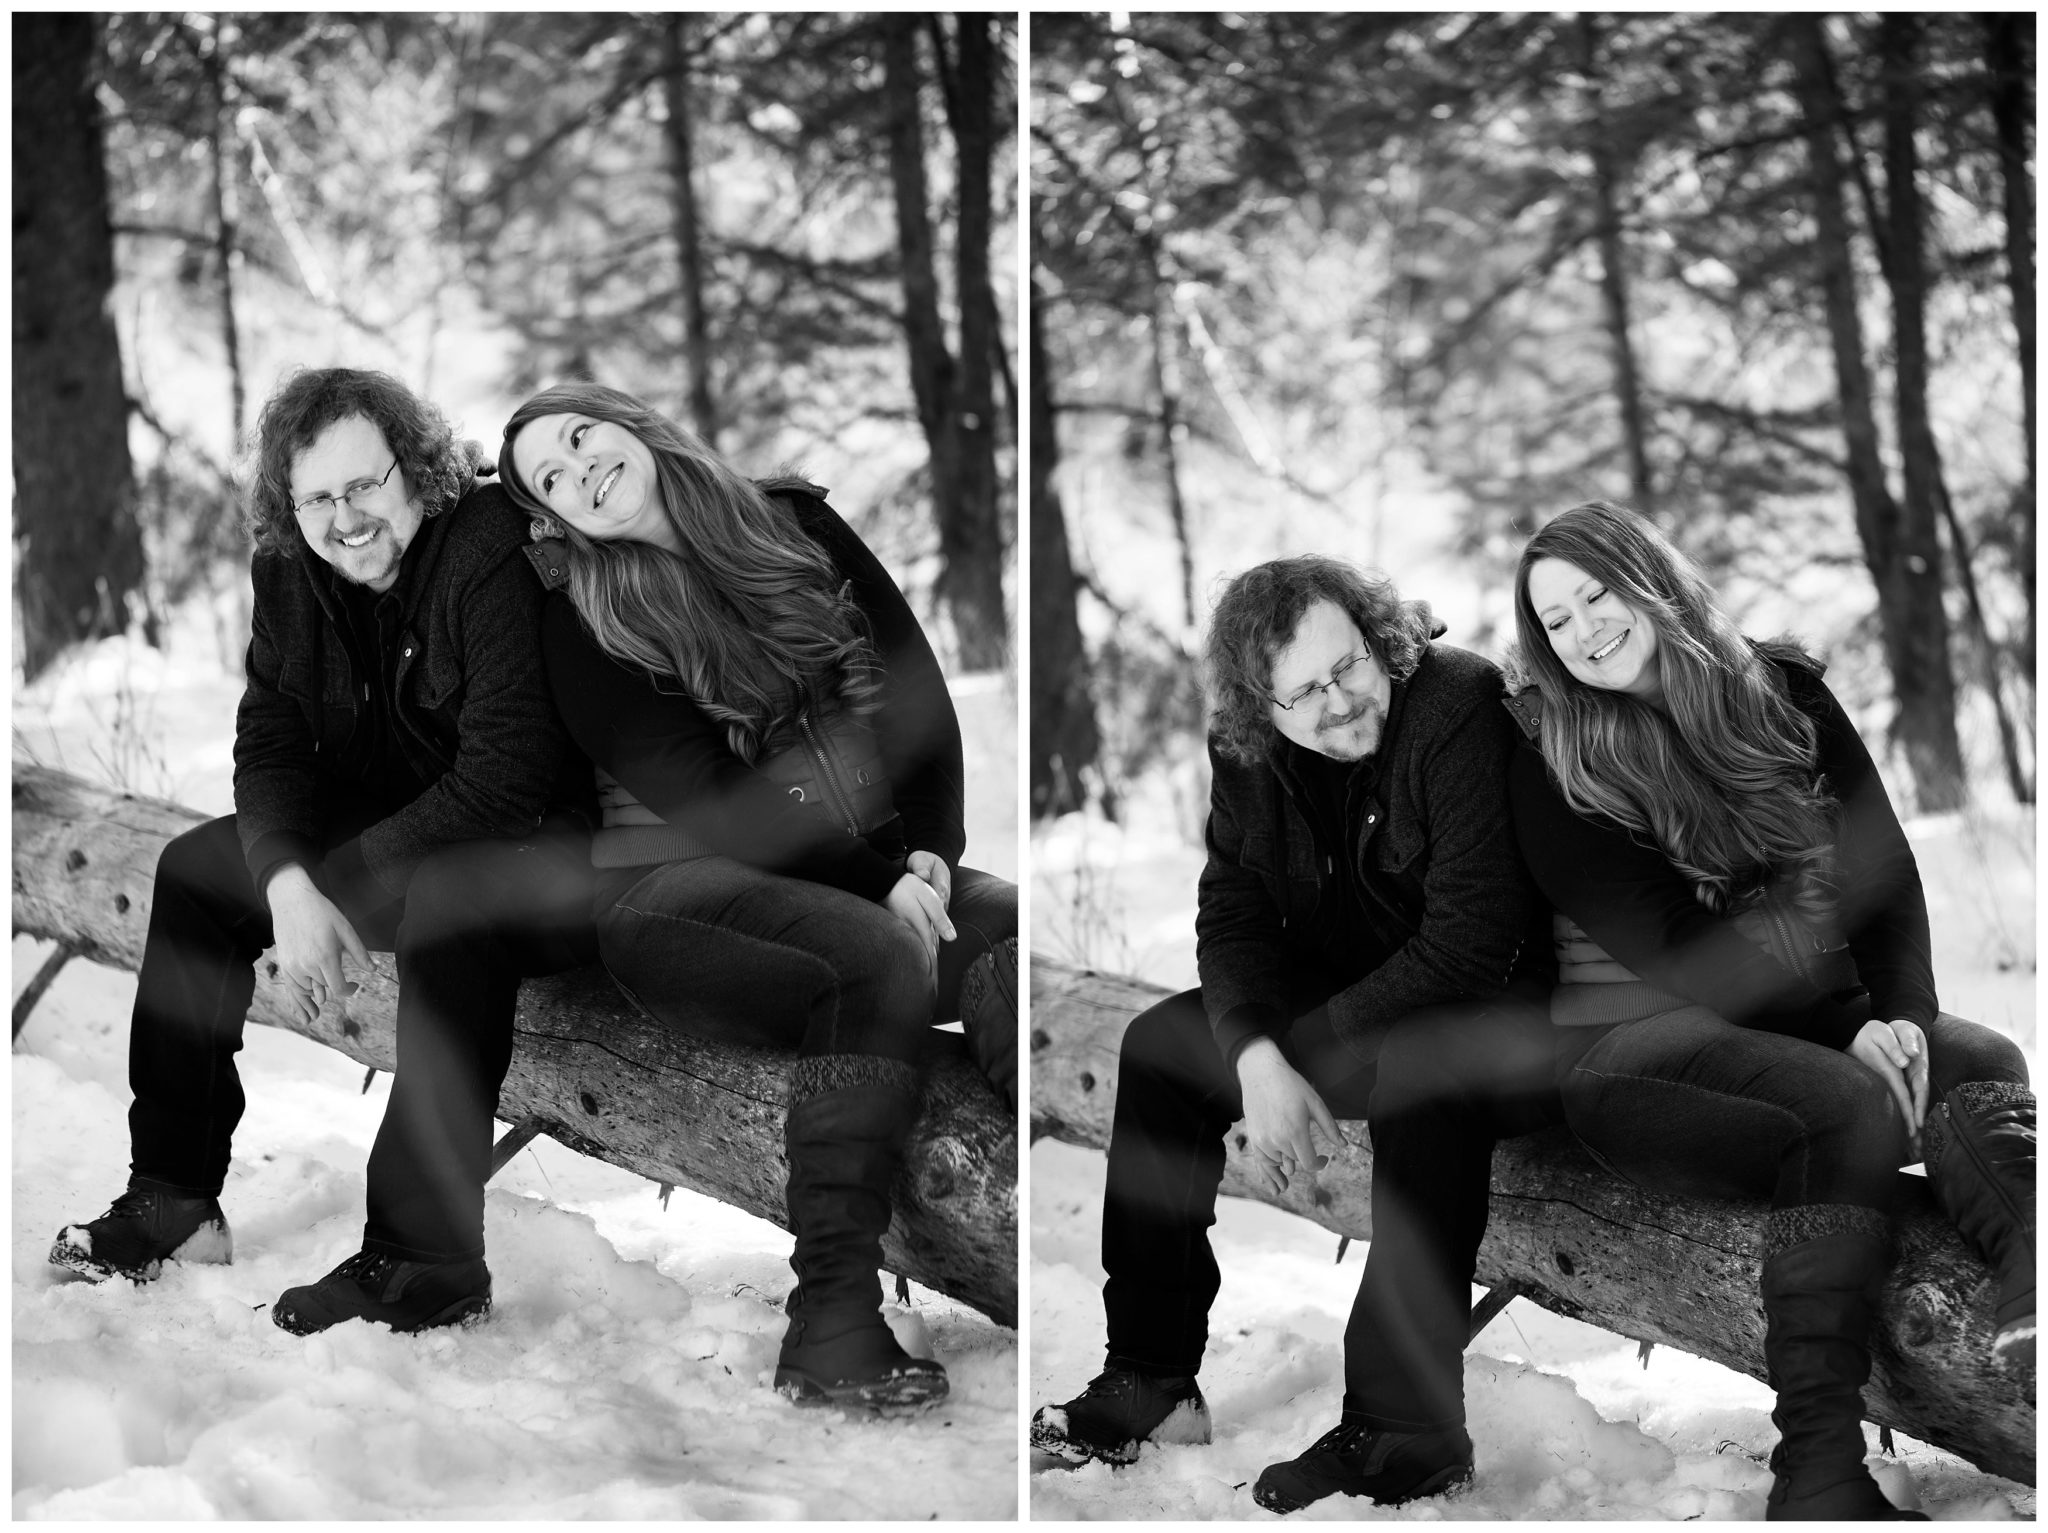 Sneak Peek Calgary Winter Engagement Session Emily Exon Photography Read hot and popular stories about lucahjin on wattpad. emily exon photography